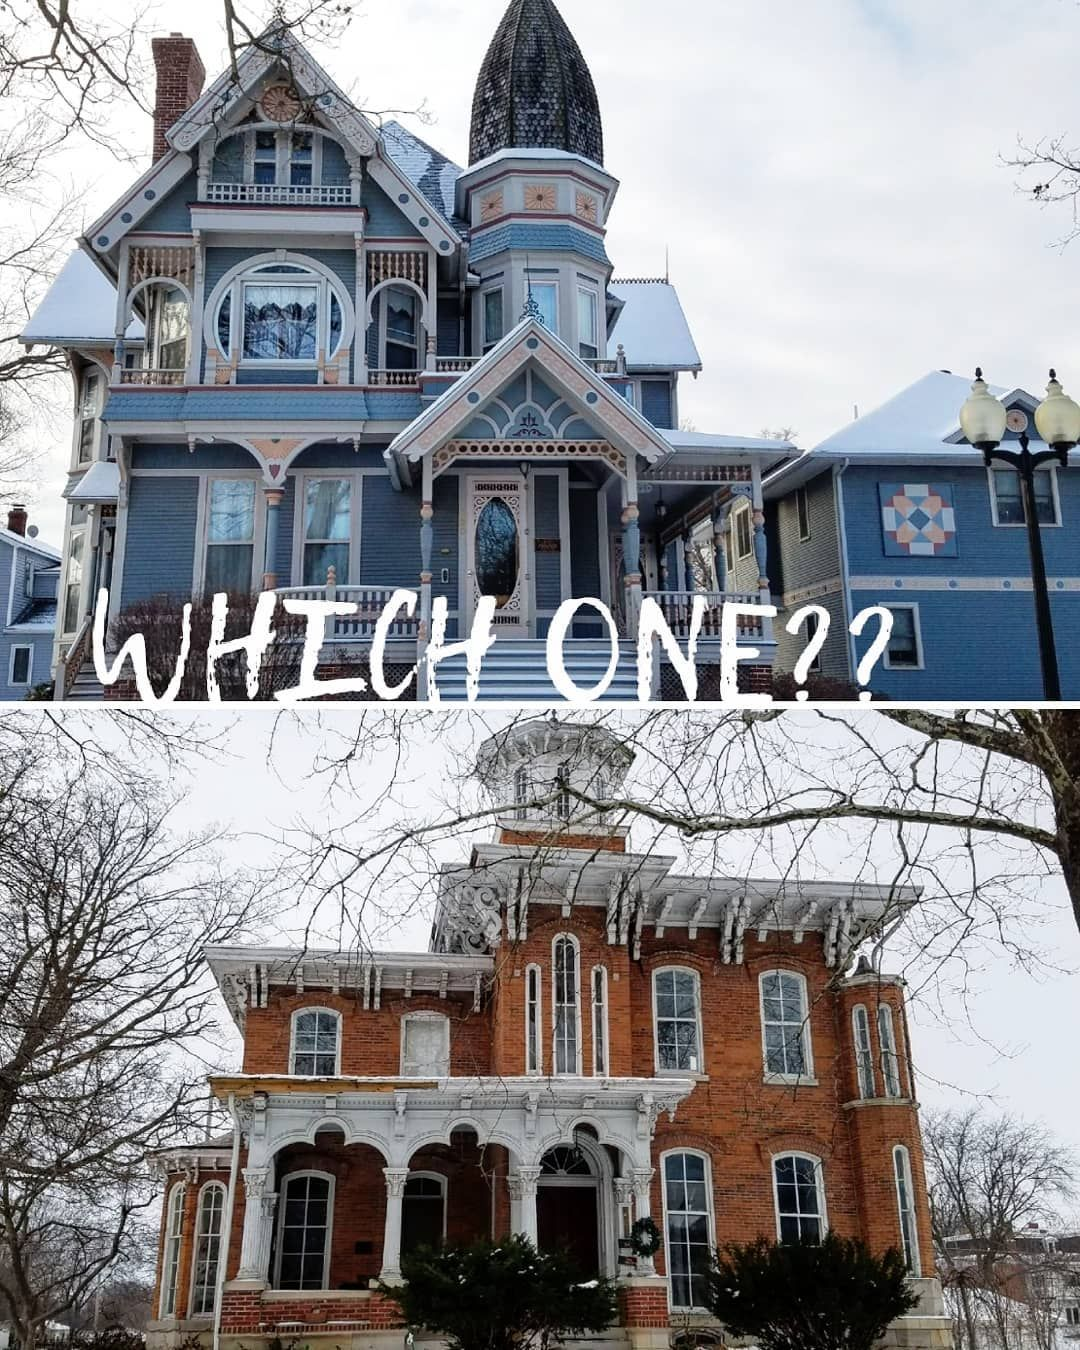 I Like Seeing What Style Of Architecture People Prefer Which